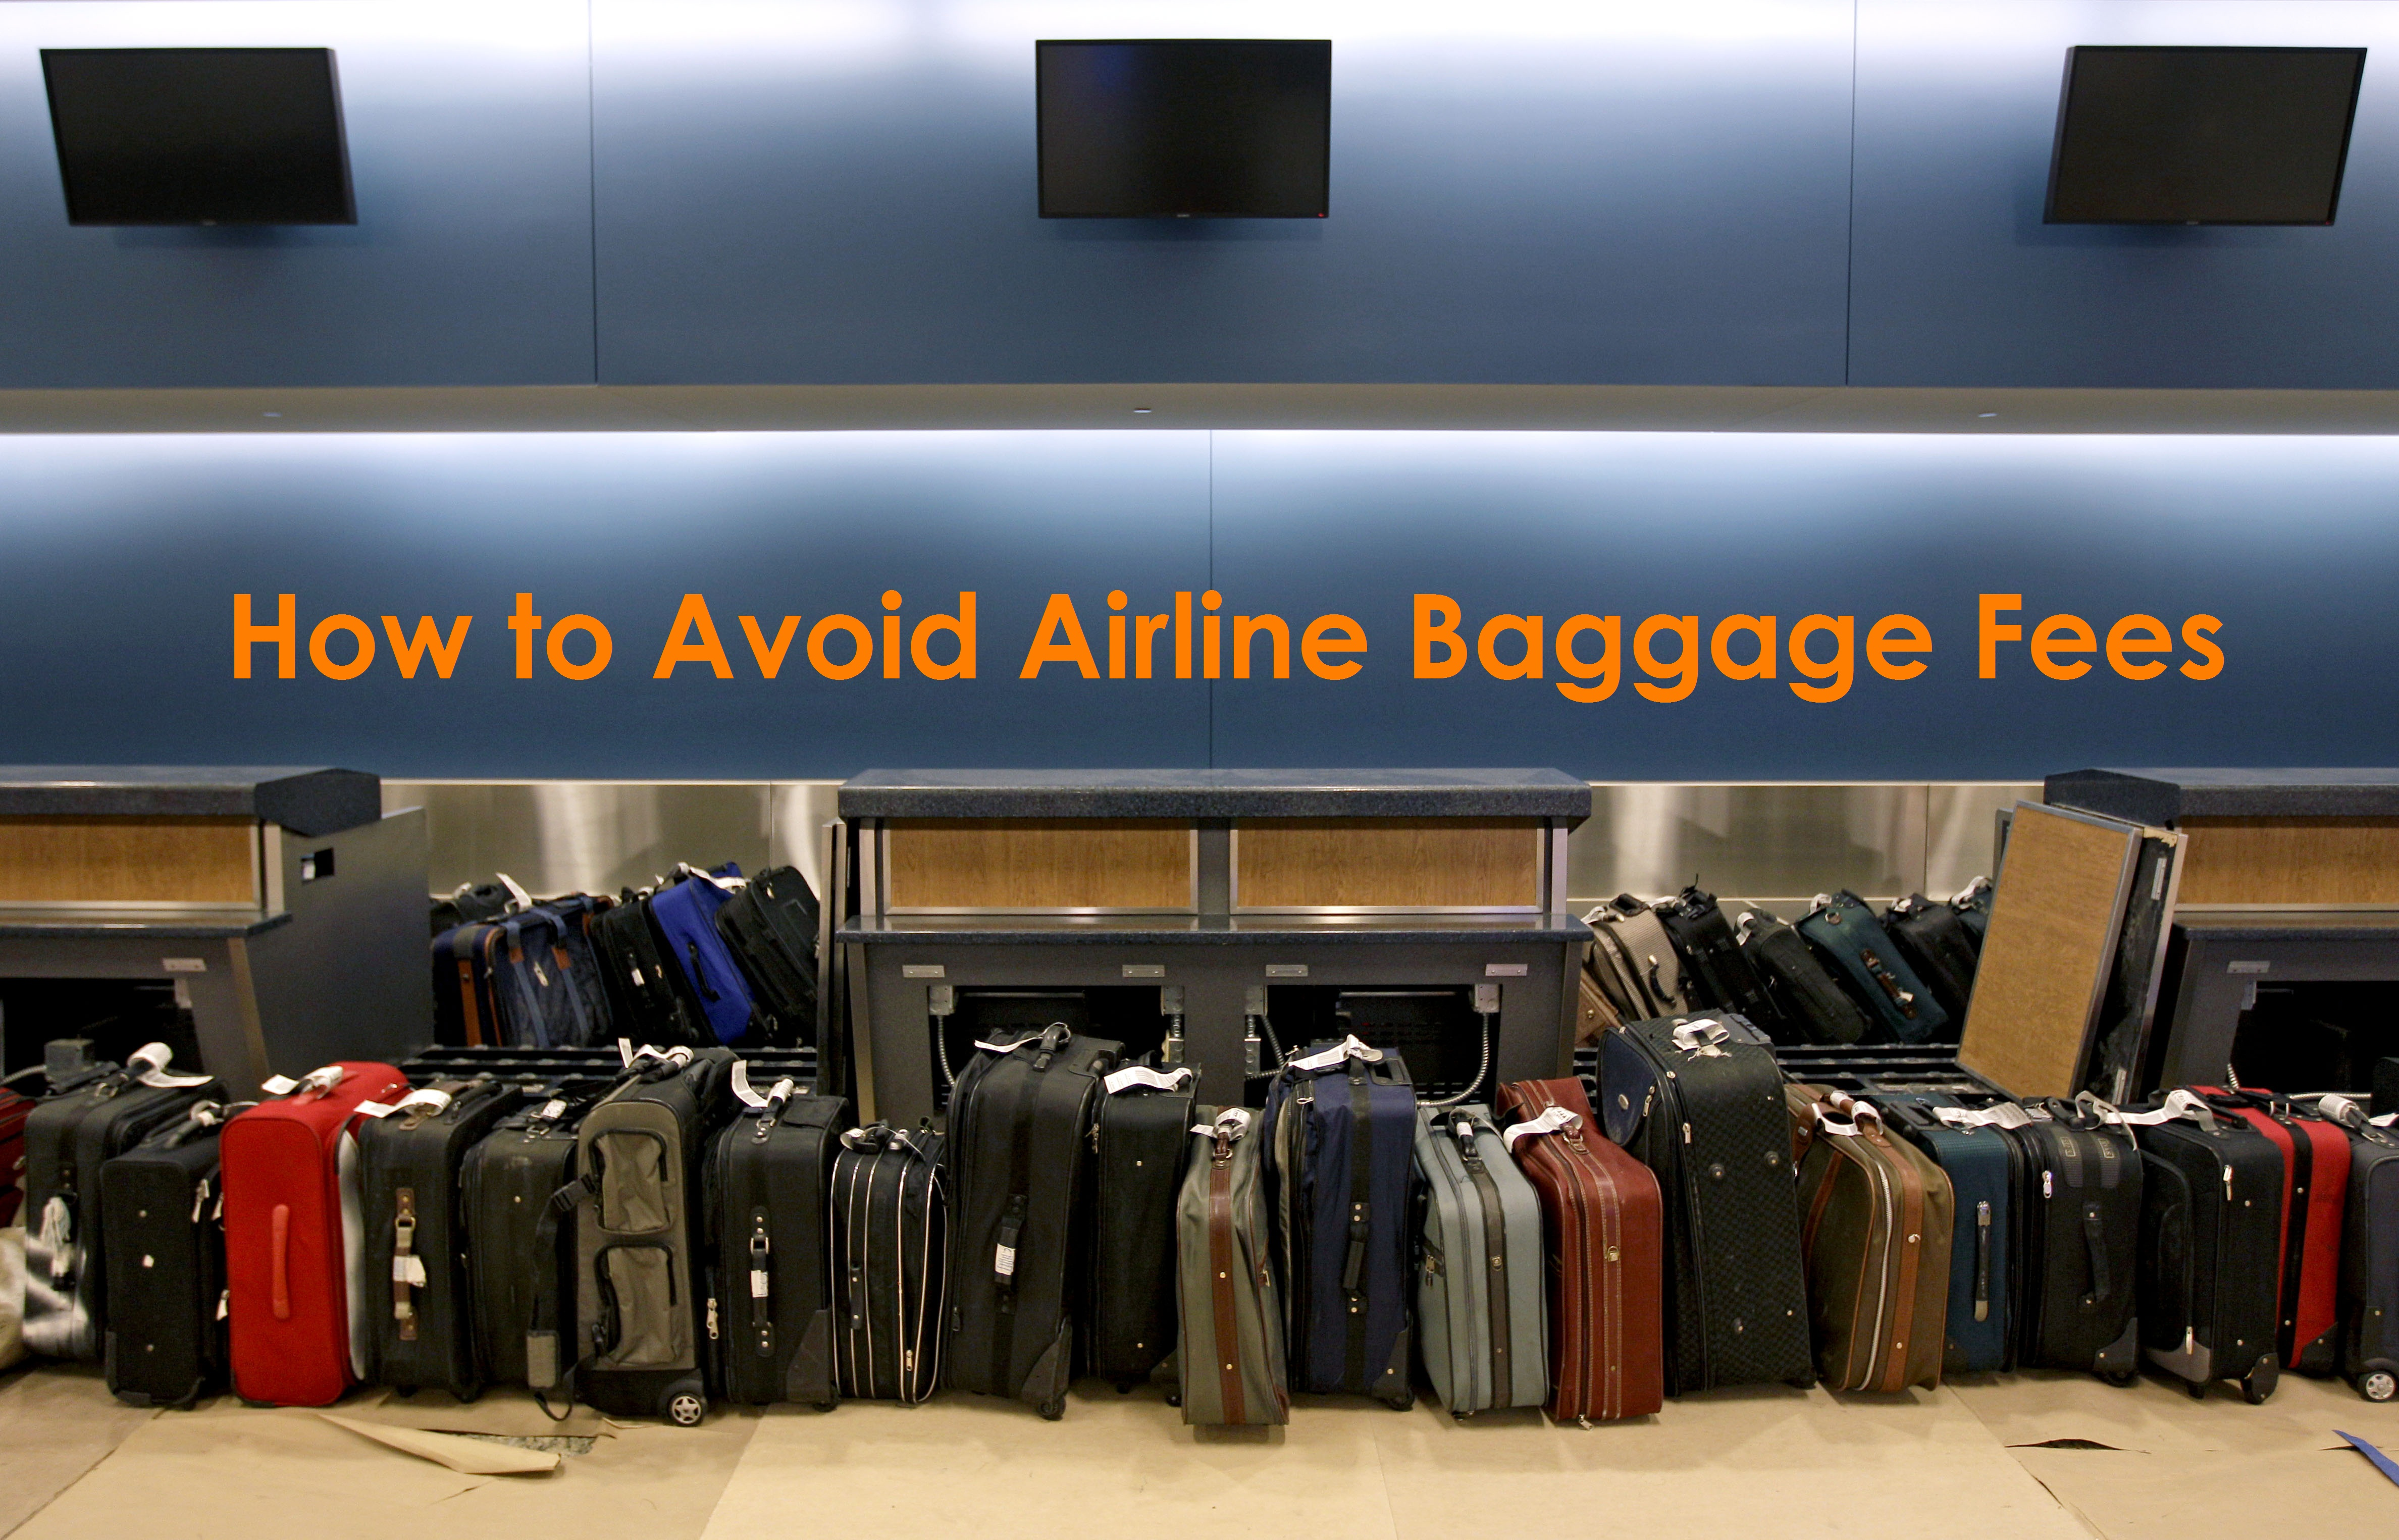 Avoid Airline Baggage Fees